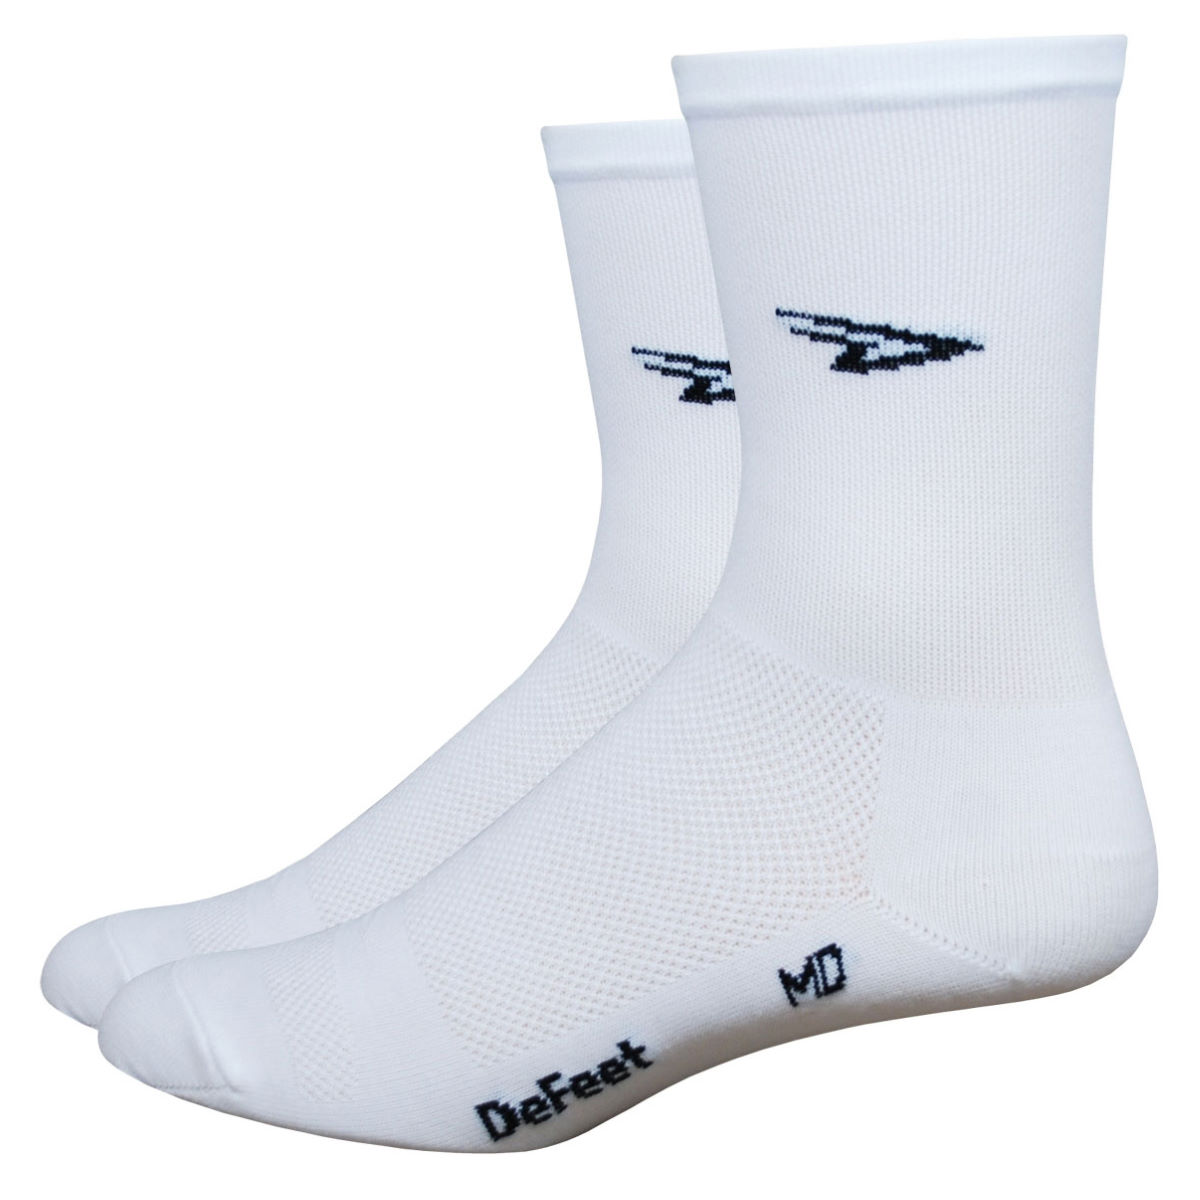 Chaussettes DeFeet Aireator High Top - S Blanc Chaussettes vélo